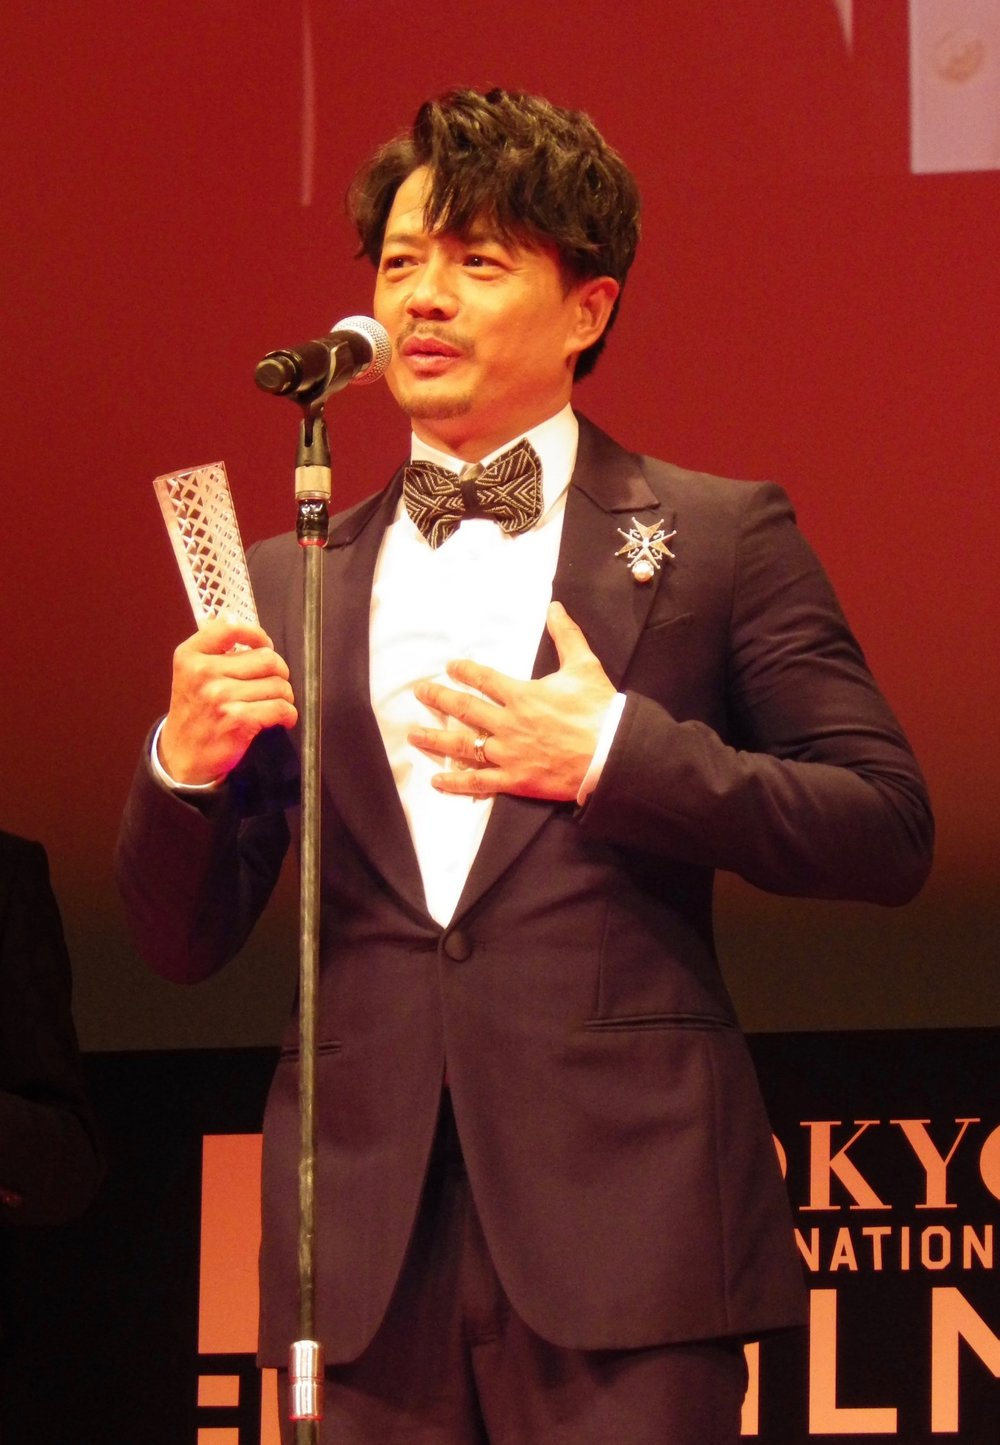 Duan Yihong accepting the Best Actor award at the closing ceremony for the 30th Tokyo International Film Festival.